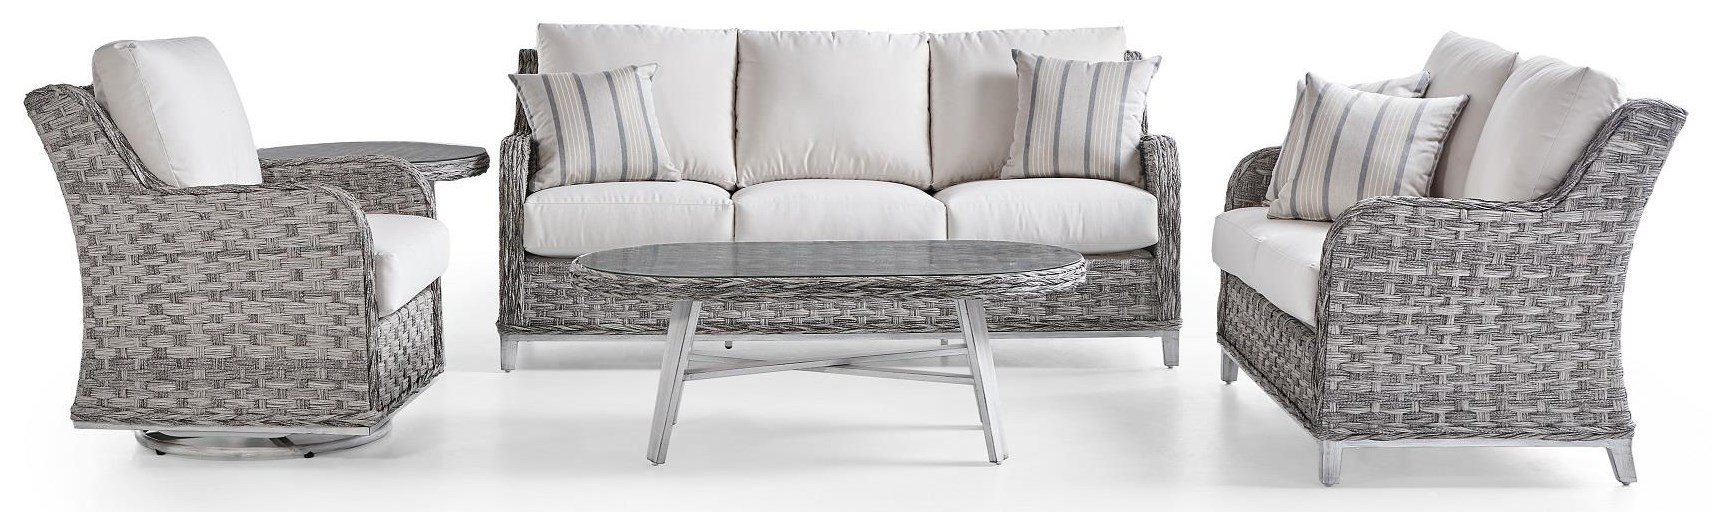 Grand Isle OUTDOOR 5 PIECE SET by South Sea Rattan & Wicker at Dream Home Interiors